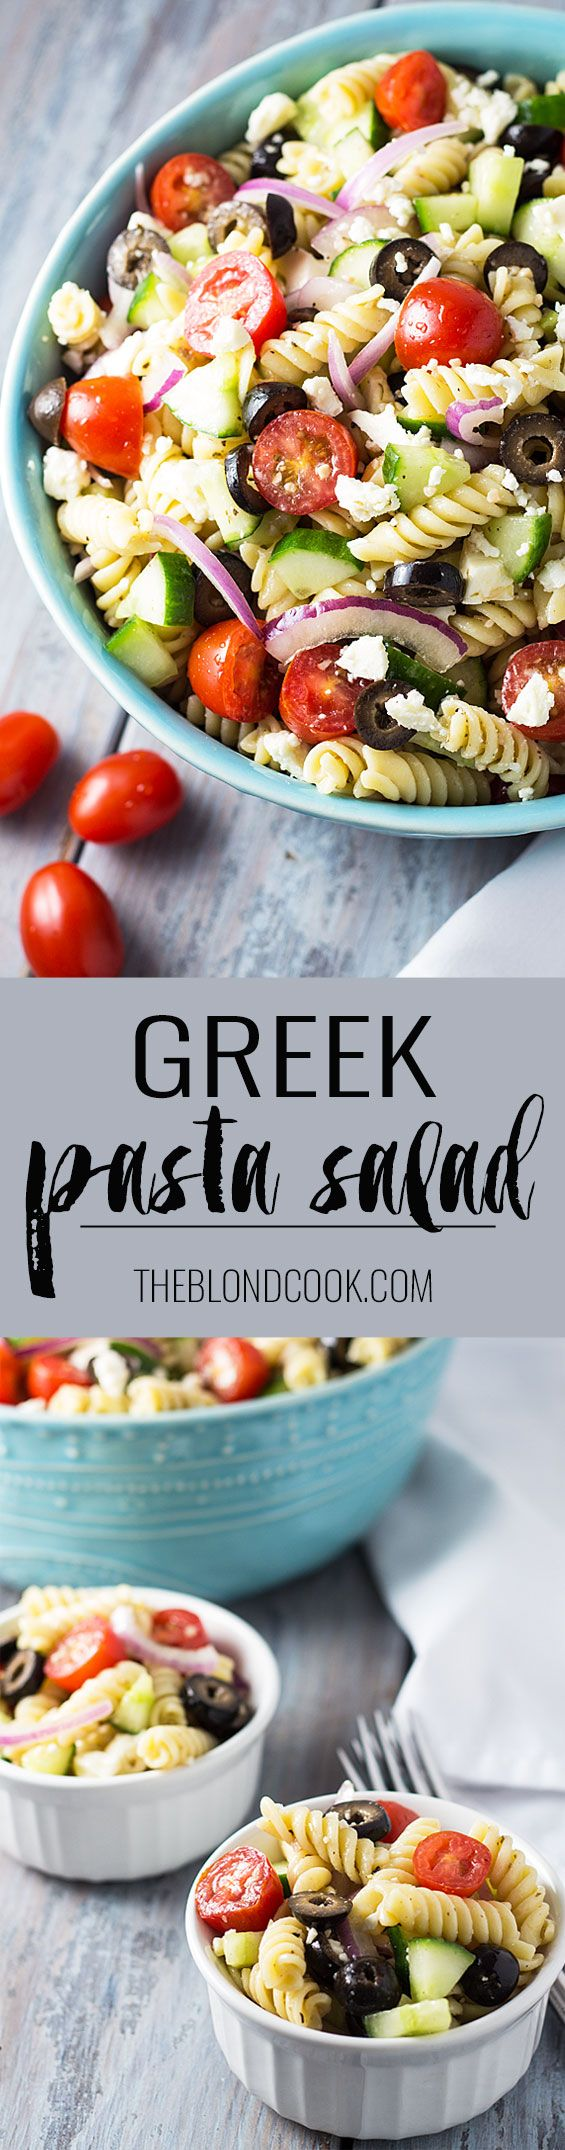 Greek Pasta Salad full of fresh veggies and pasta with an easy homemade vinaigrette | theblondcook.com